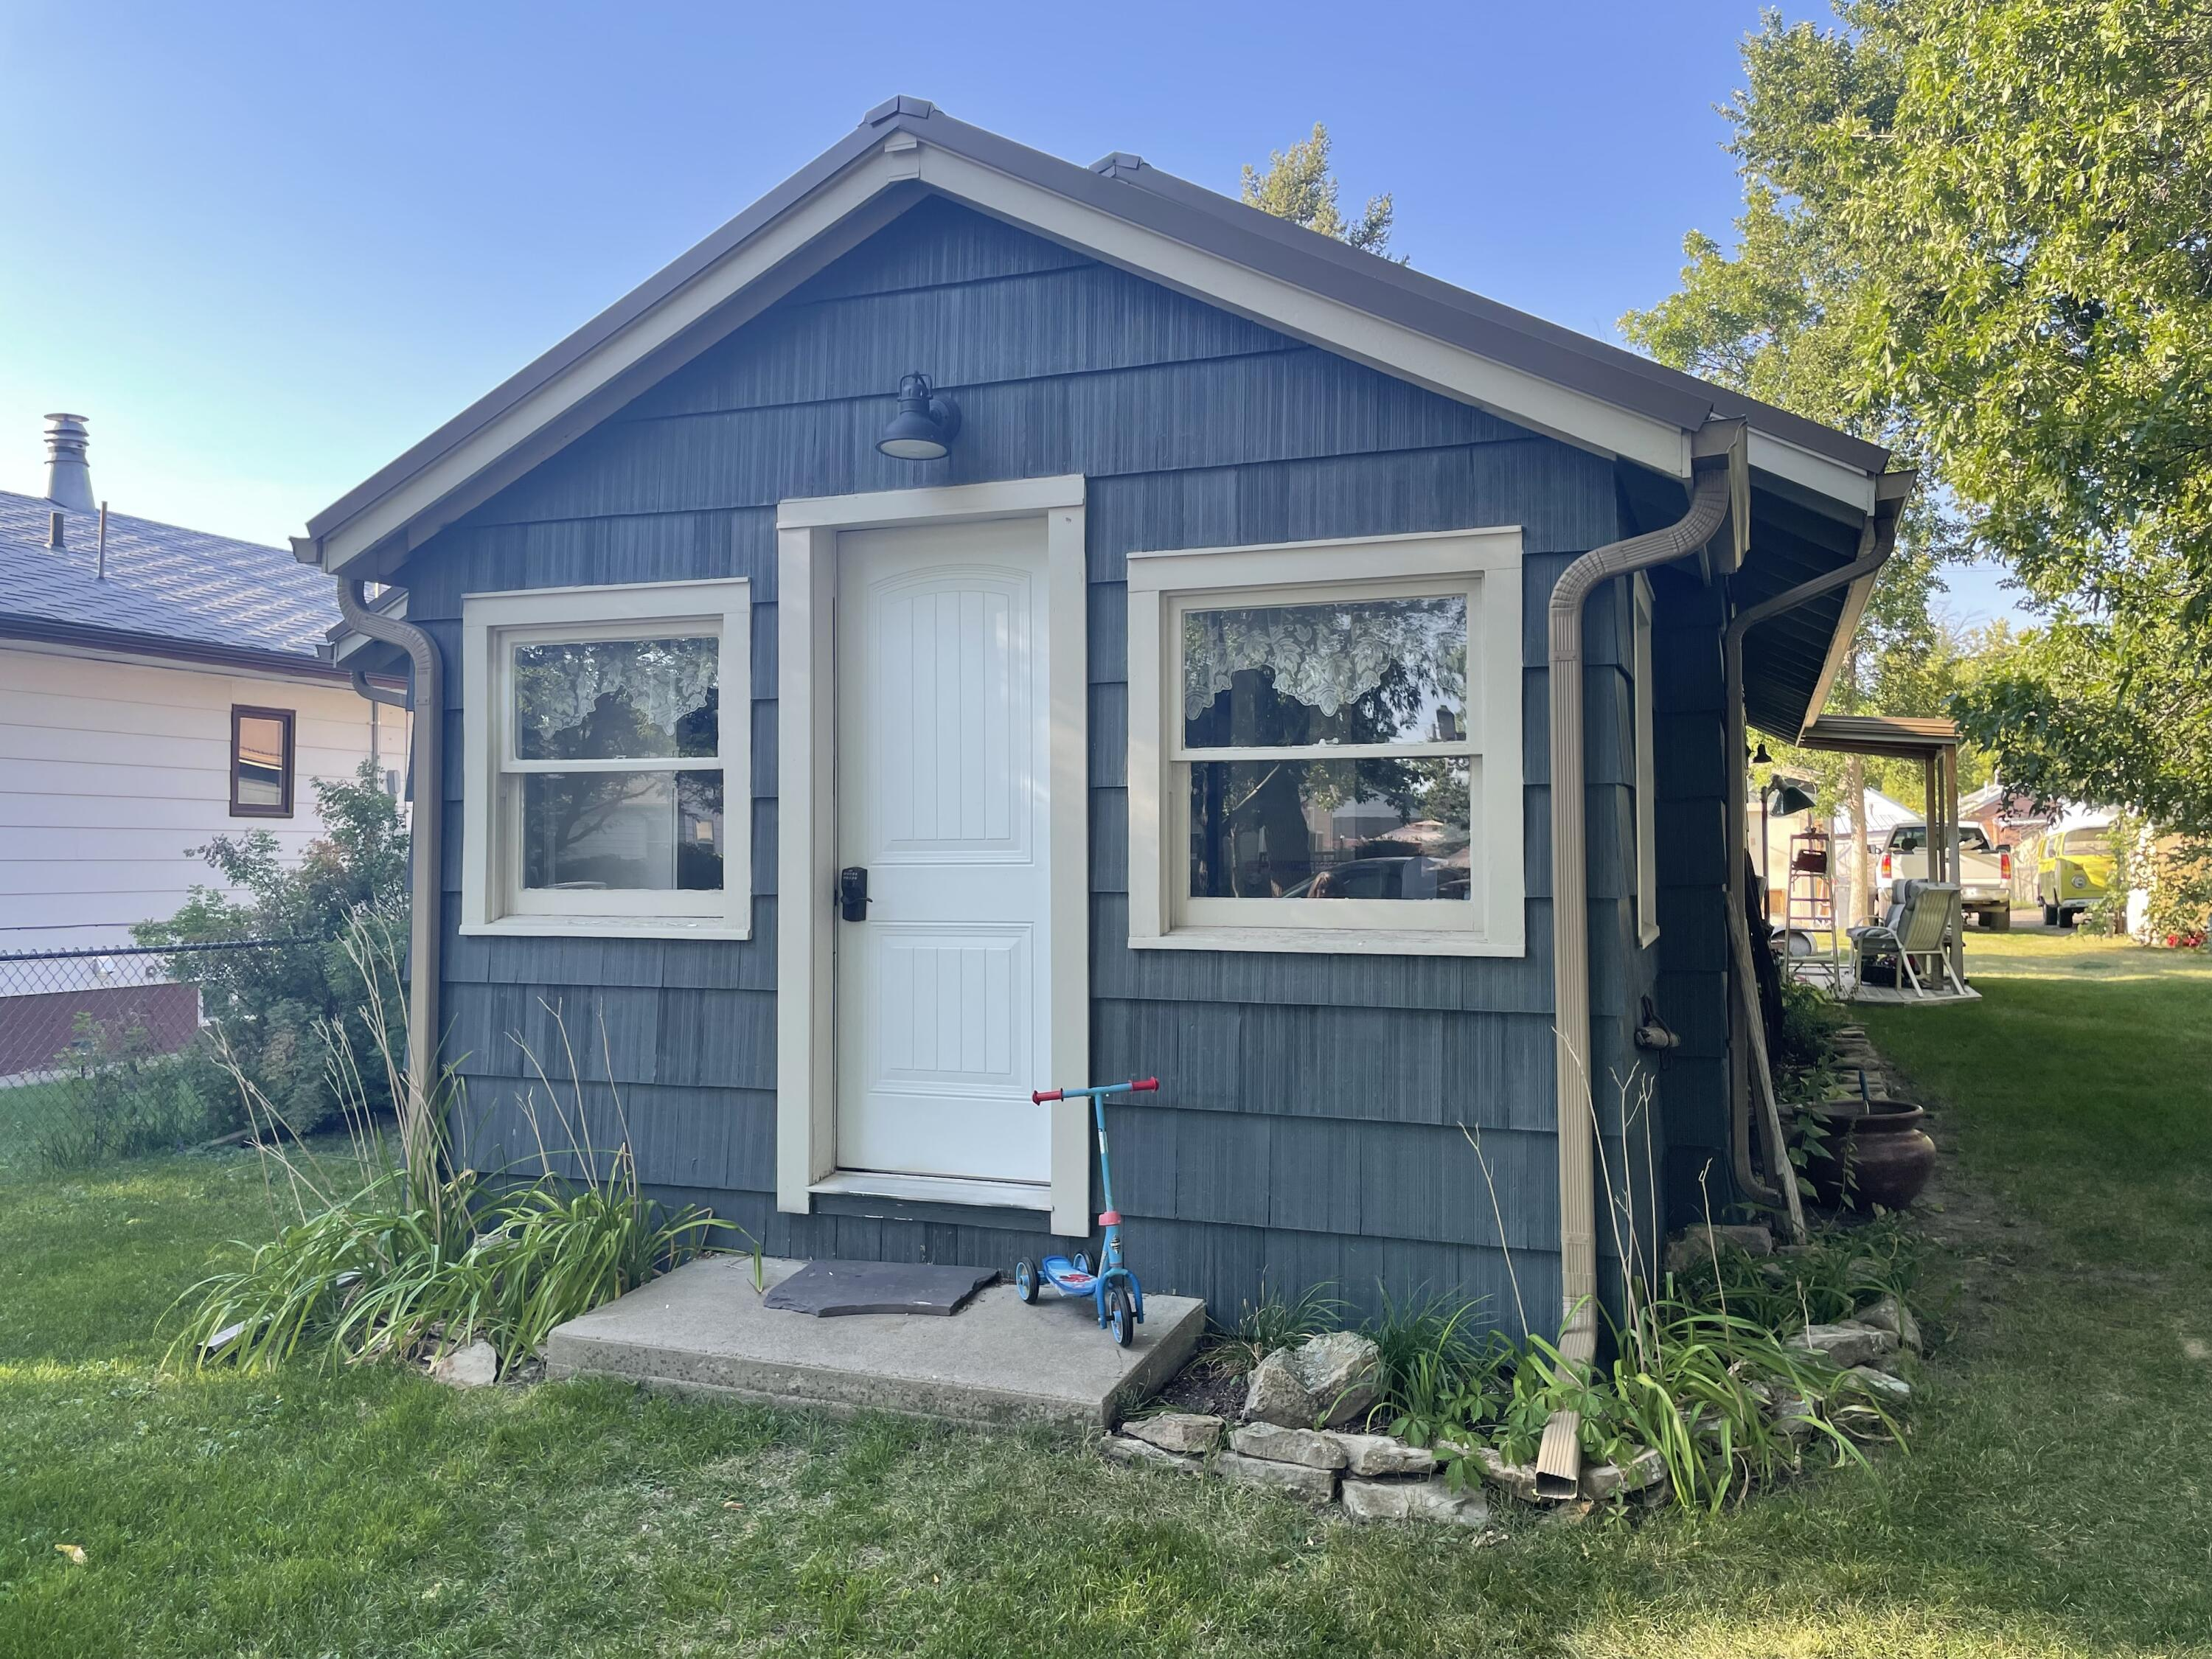 Adorably remodeled 3 bed 1 bath home is a central location.  This home has an open living/dining area with new floors, paint and fixtures.  Two of the bedrooms are on the main level and one is down.Beautiful 2 car, insulated, heated garage.